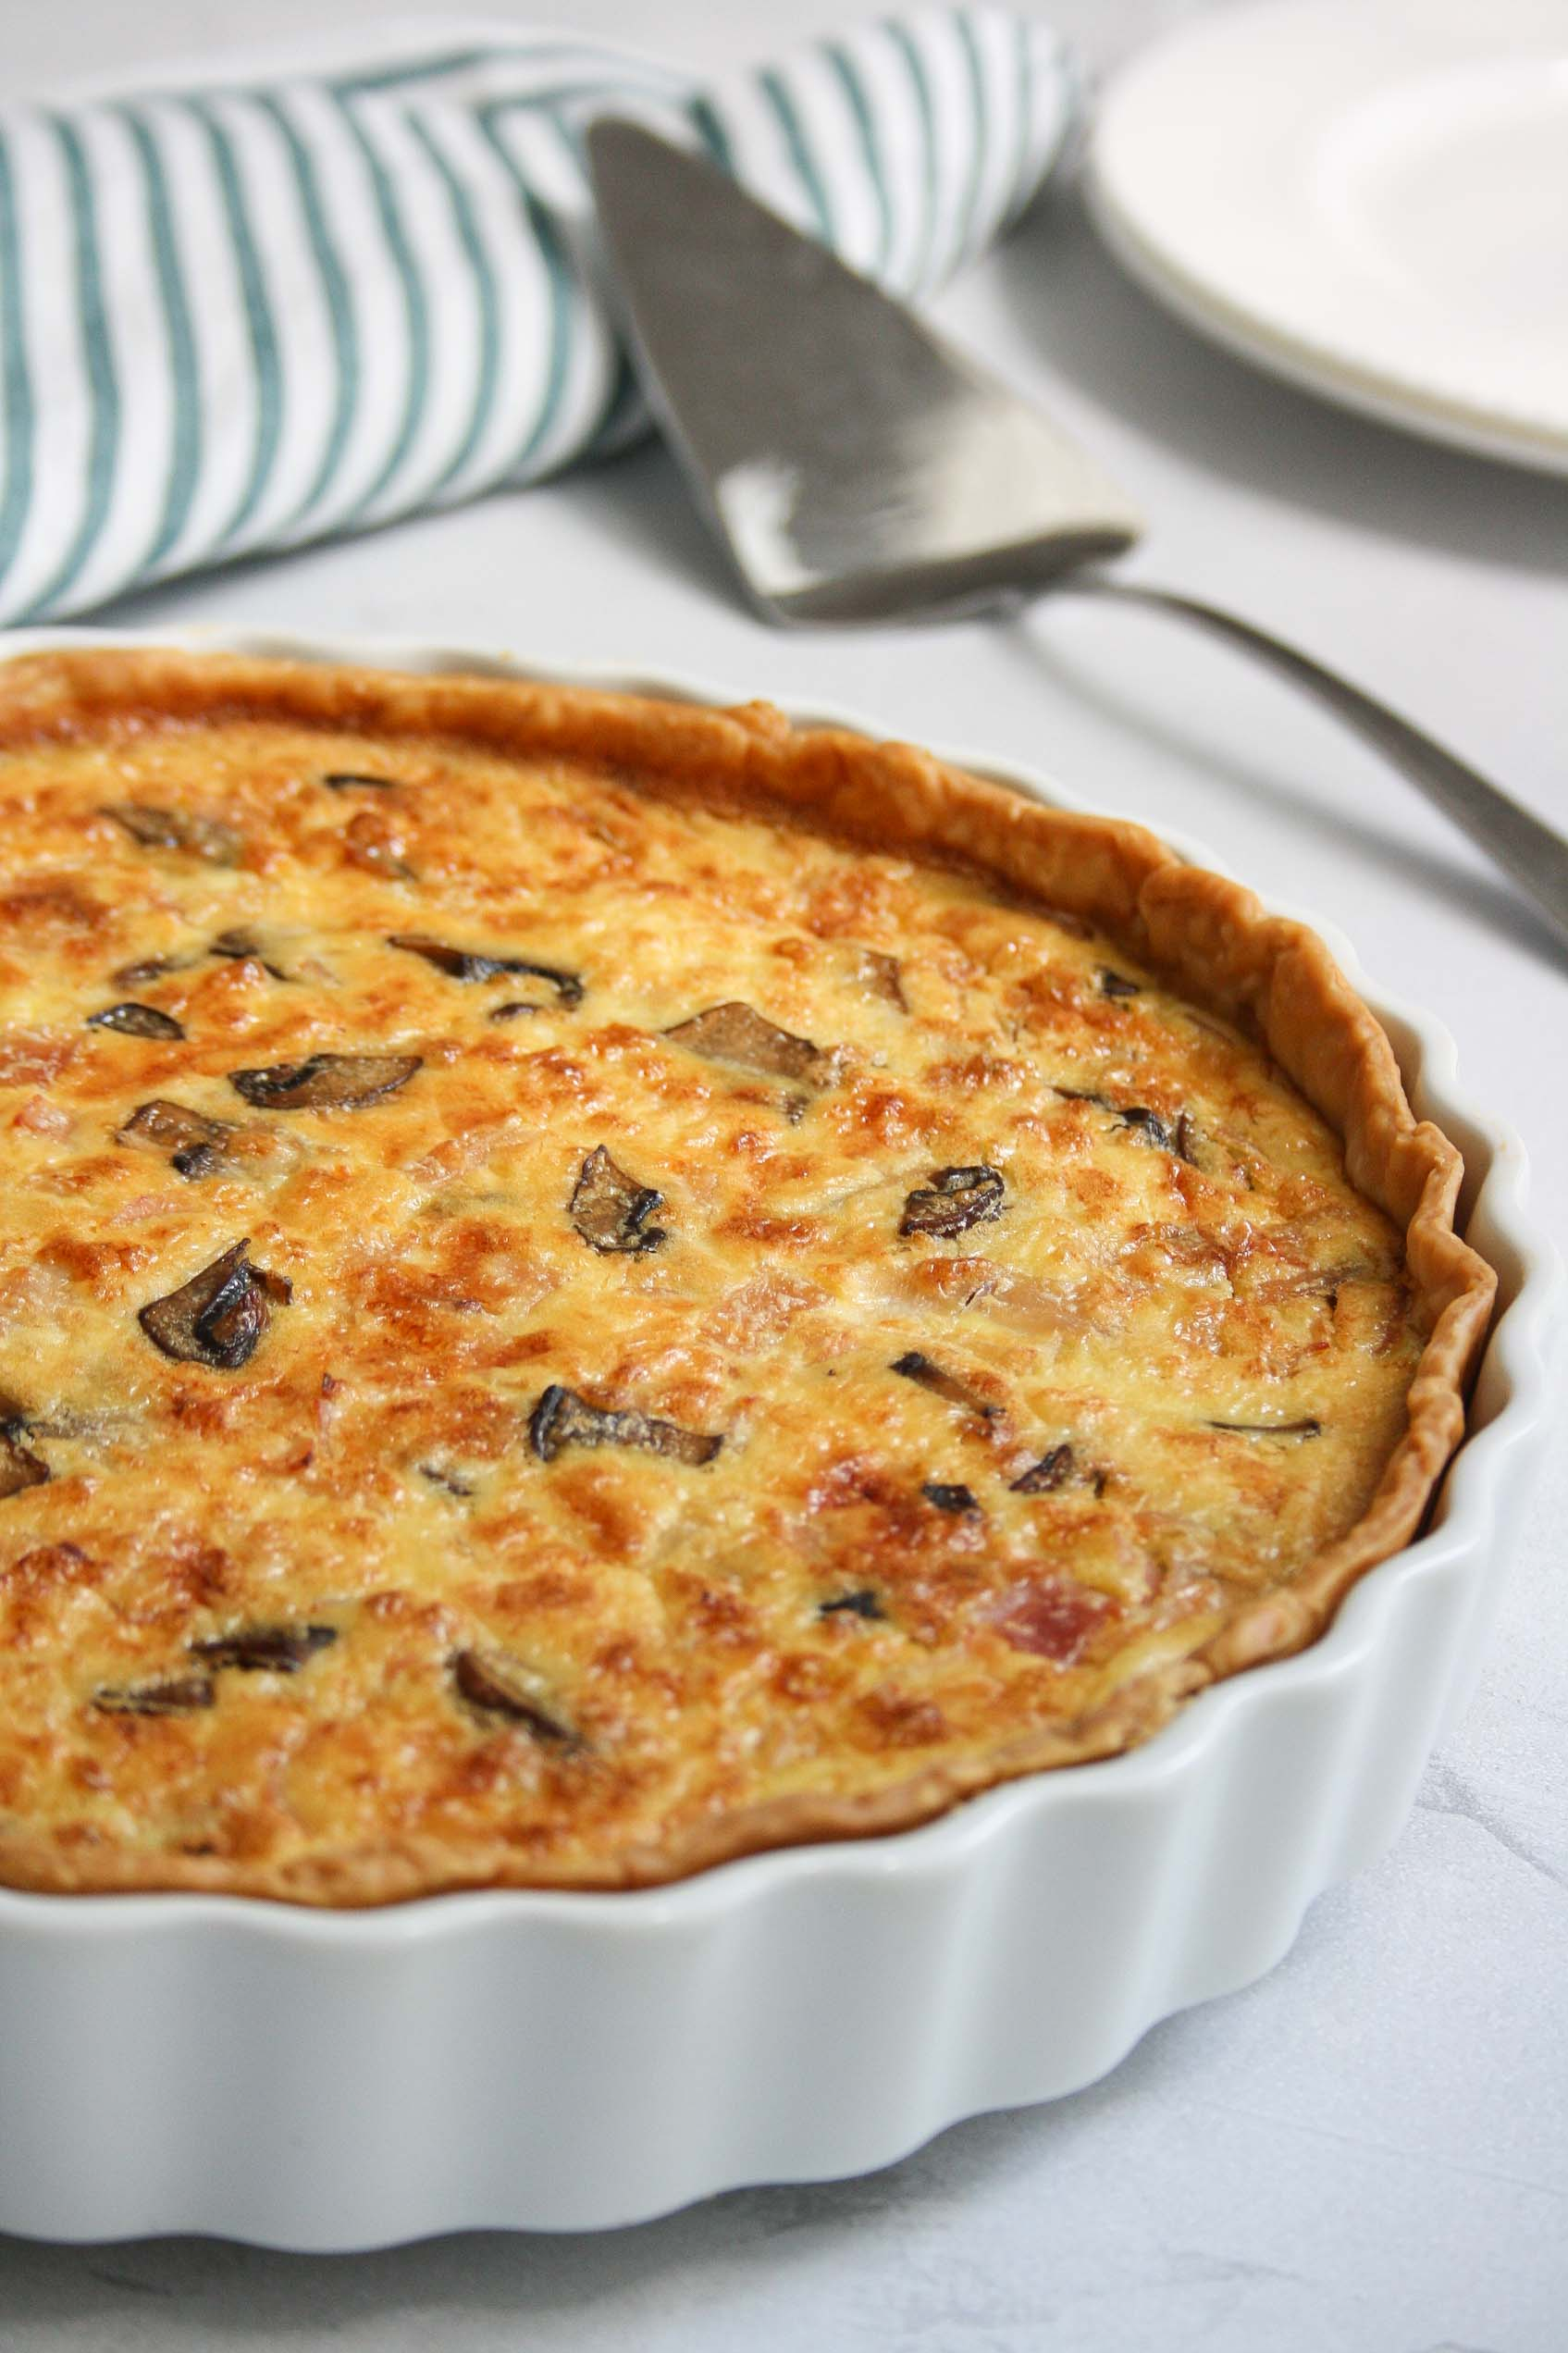 ham and mushroom quiche in a white pan with a cloth, serving spoon and plates on the background